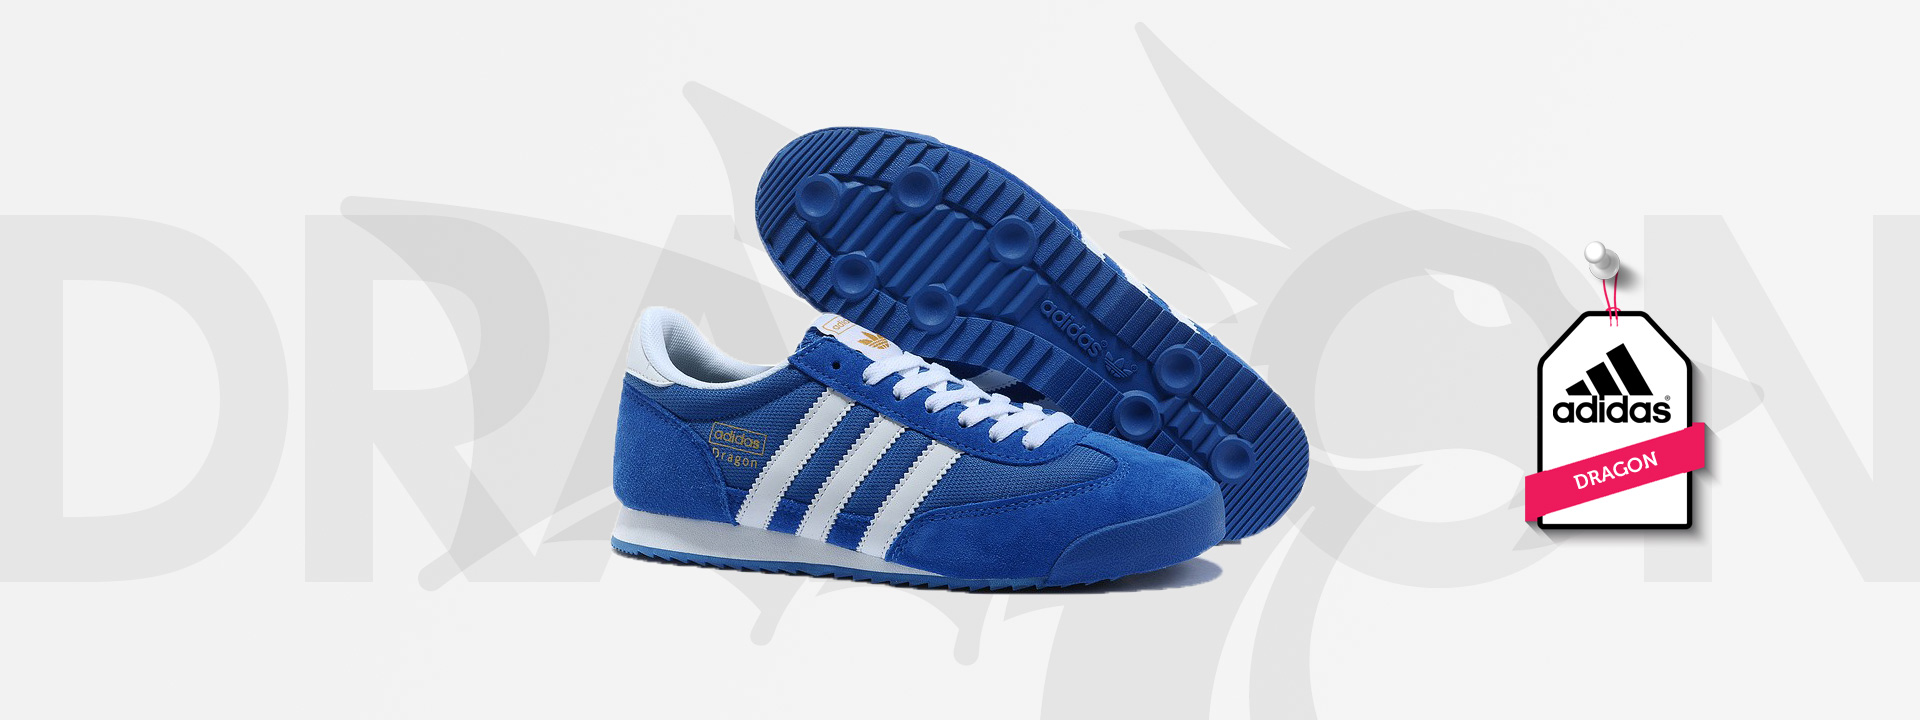 adidas dragon heren sale